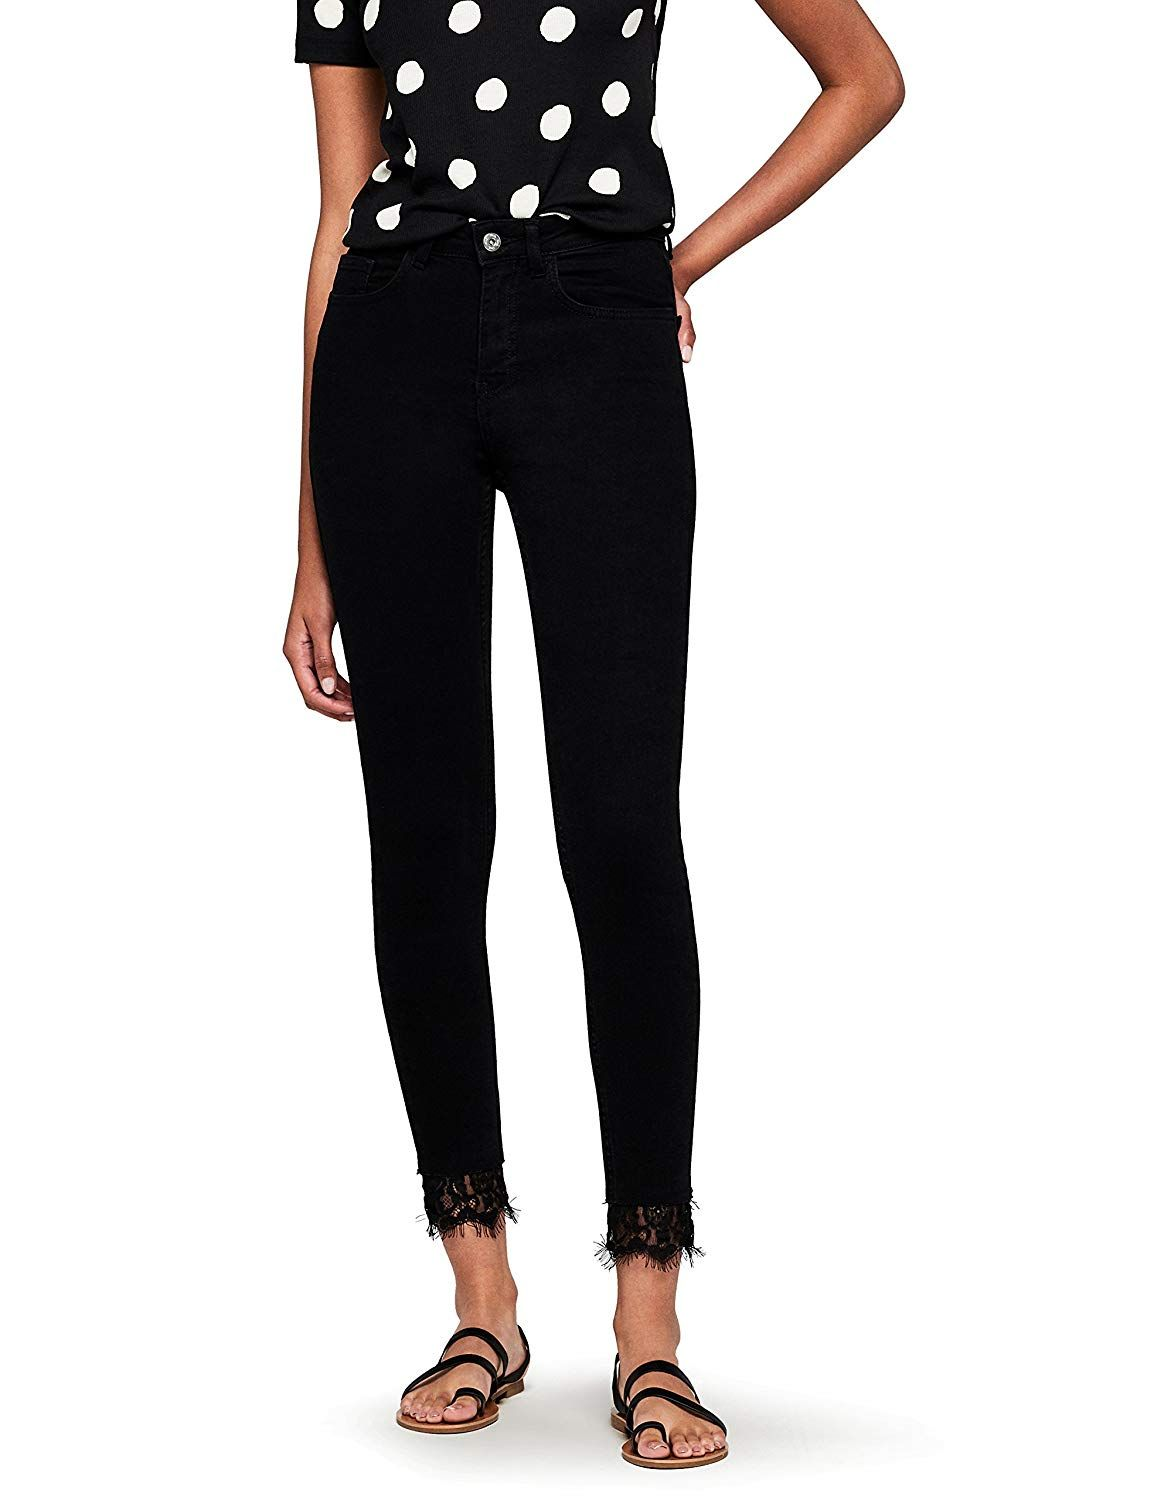 1462c9fc find. Women's Skinny Jeans: Amazon.co.uk: Clothing | Black Jeans in ...